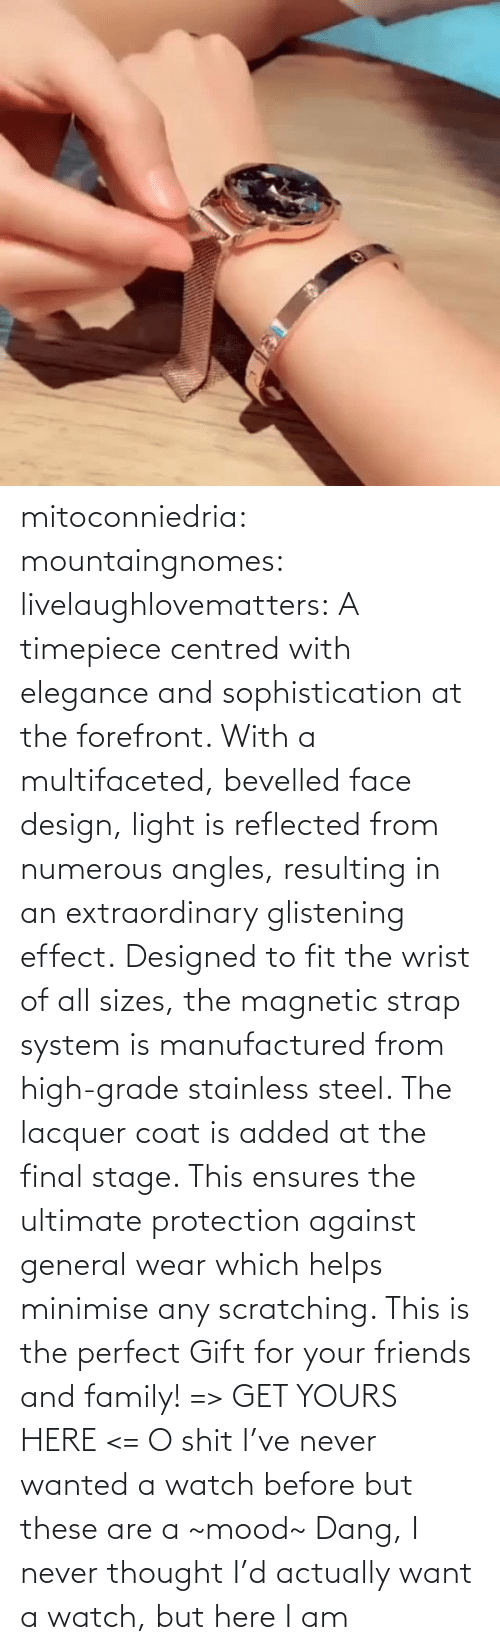 all: mitoconniedria: mountaingnomes:   livelaughlovematters:  A timepiece centred with elegance and sophistication at the forefront. With a multifaceted, bevelled face design, light is reflected from numerous angles, resulting in an extraordinary glistening effect. Designed to fit the wrist of all sizes, the magnetic strap system is manufactured from high-grade stainless steel. The lacquer coat is added at the final stage. This ensures the ultimate protection against general wear which helps minimise any scratching. This is the perfect Gift for your friends and family! => GET YOURS HERE <=  O shit I've never wanted a watch before but these are a ~mood~    Dang, I never thought I'd actually want a watch, but here I am